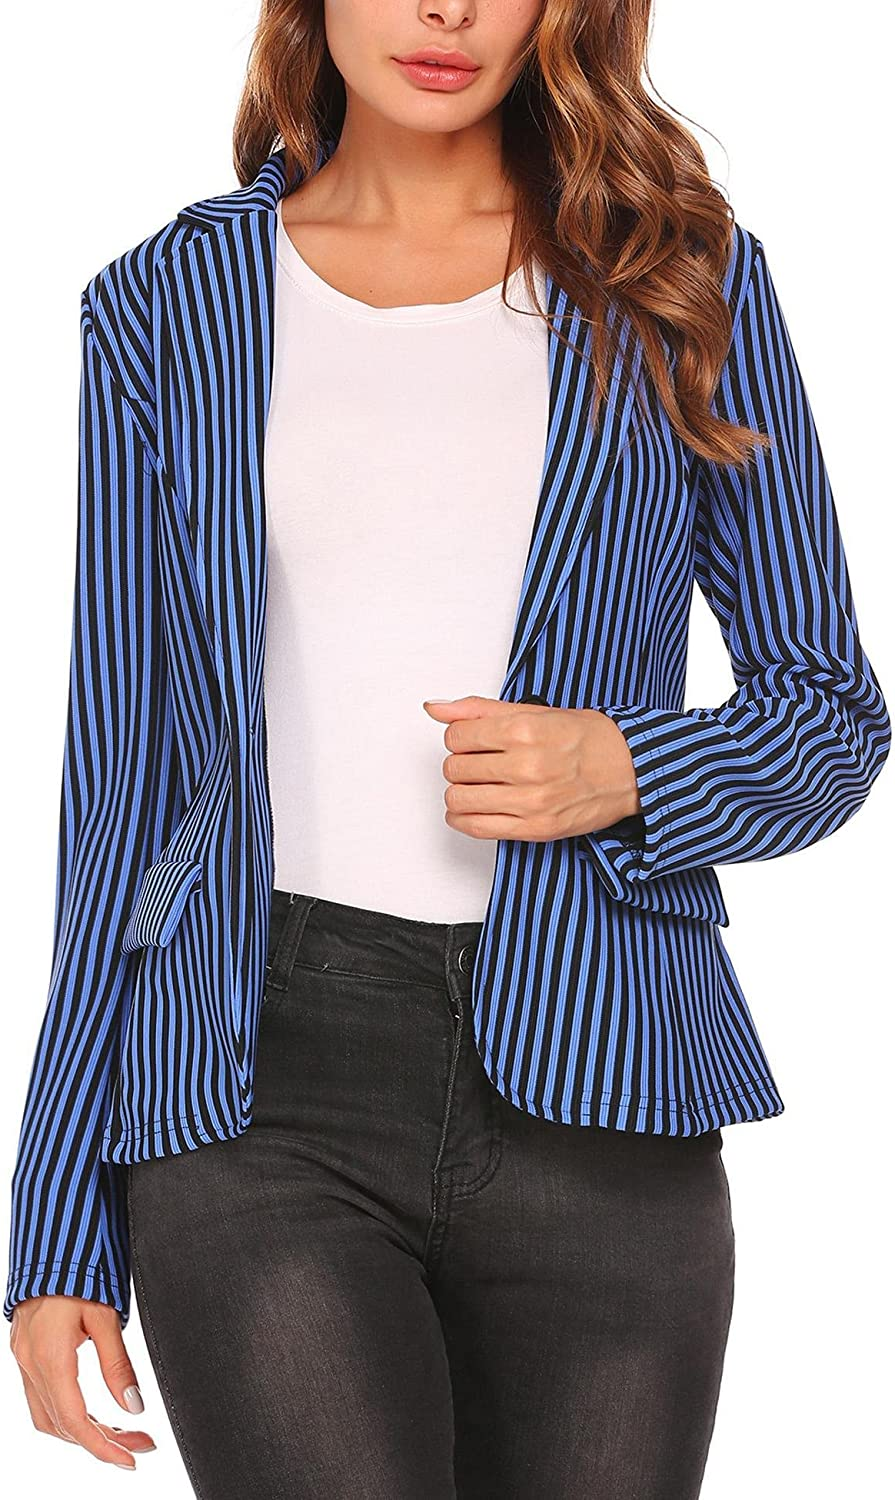 ANGVNS Business Blazer Women's Notched Lapel Stripe Cardigan Front Open Office Outerwear